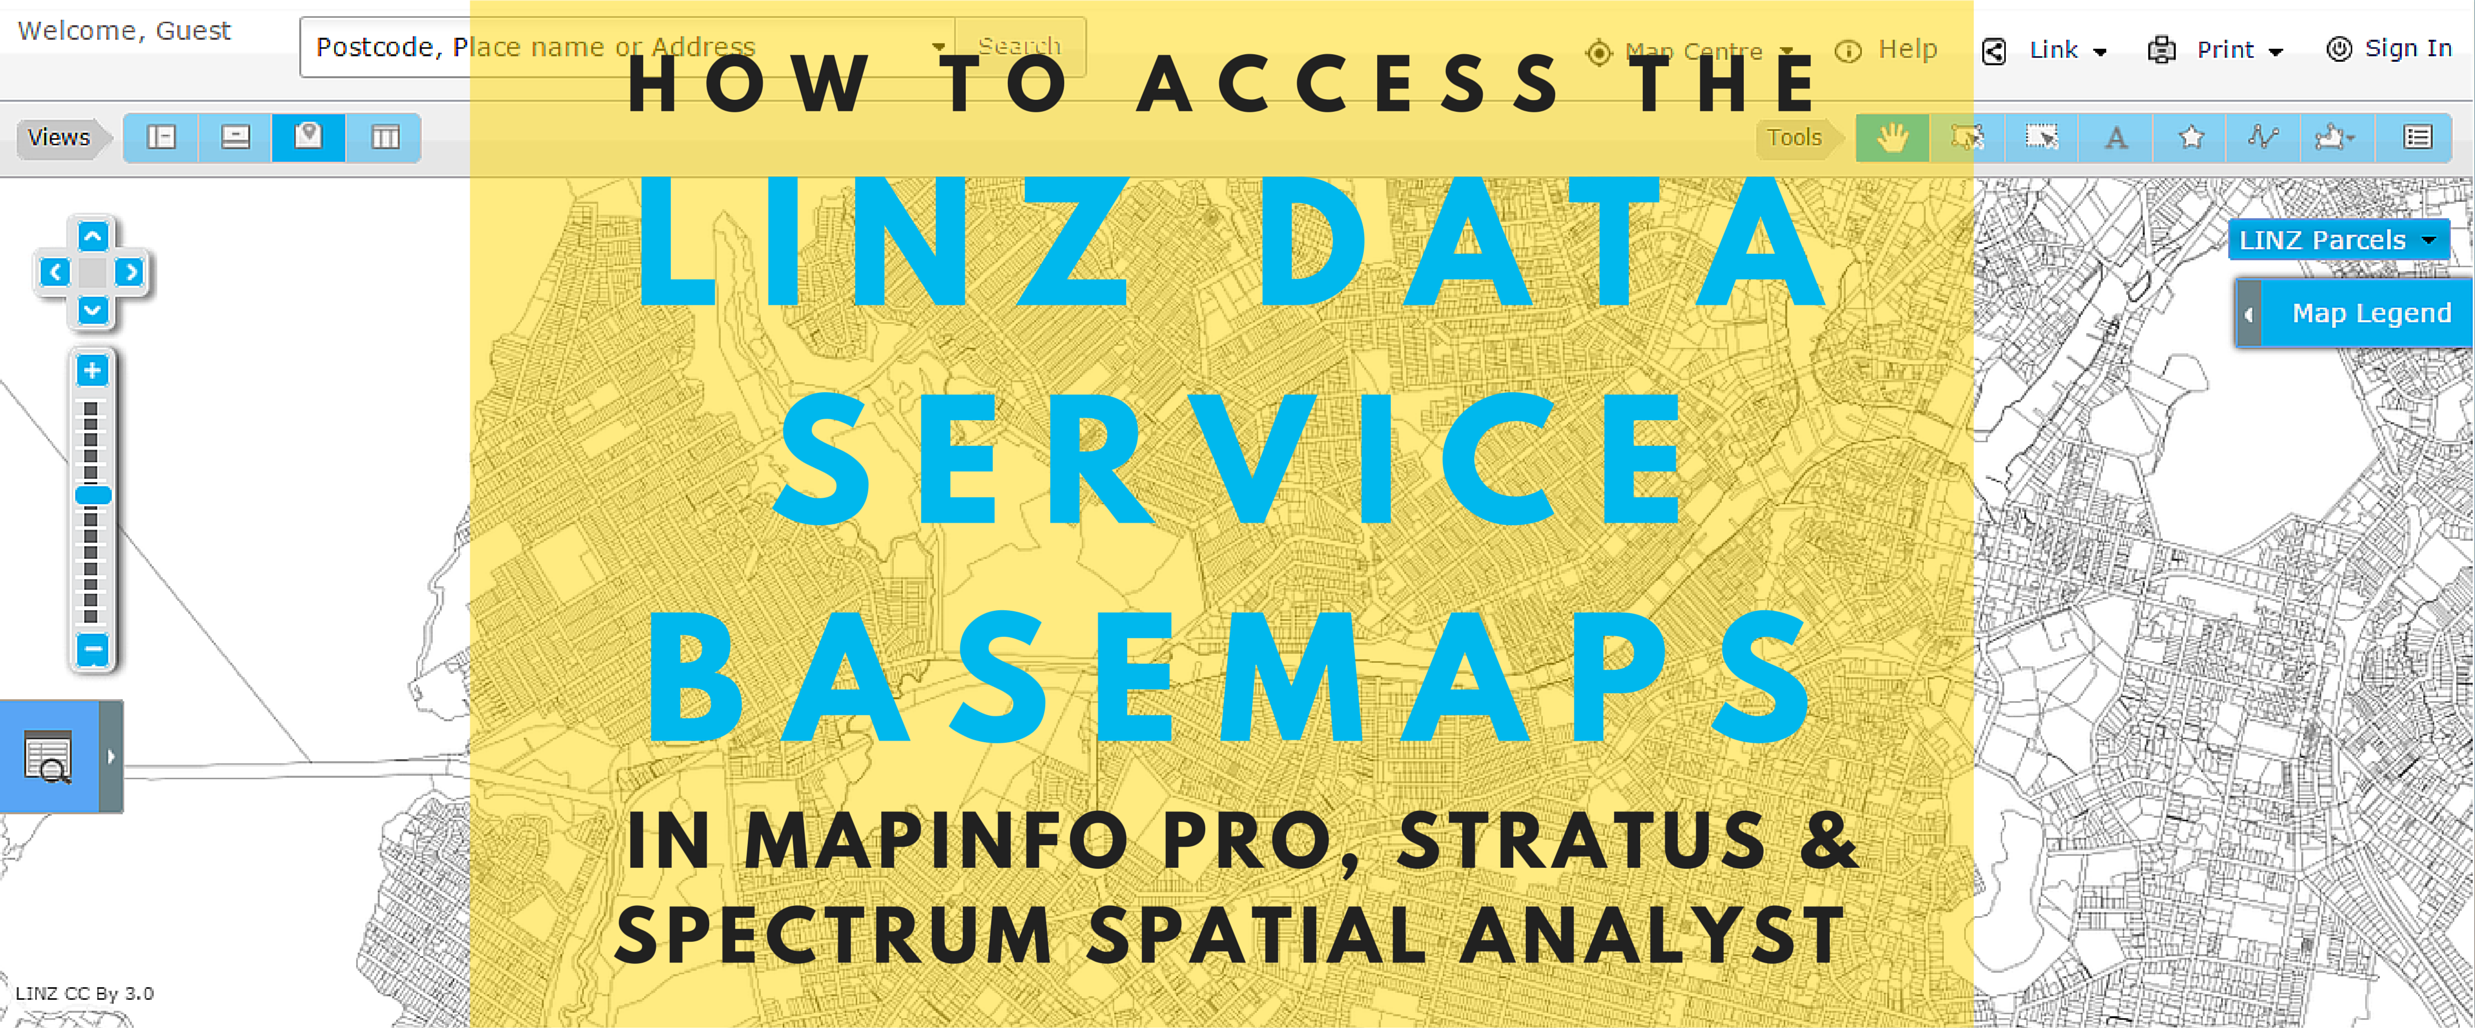 How to access the LINZ Data Service basemaps in MapInfo Pro and Spectrum Spatial Analyst